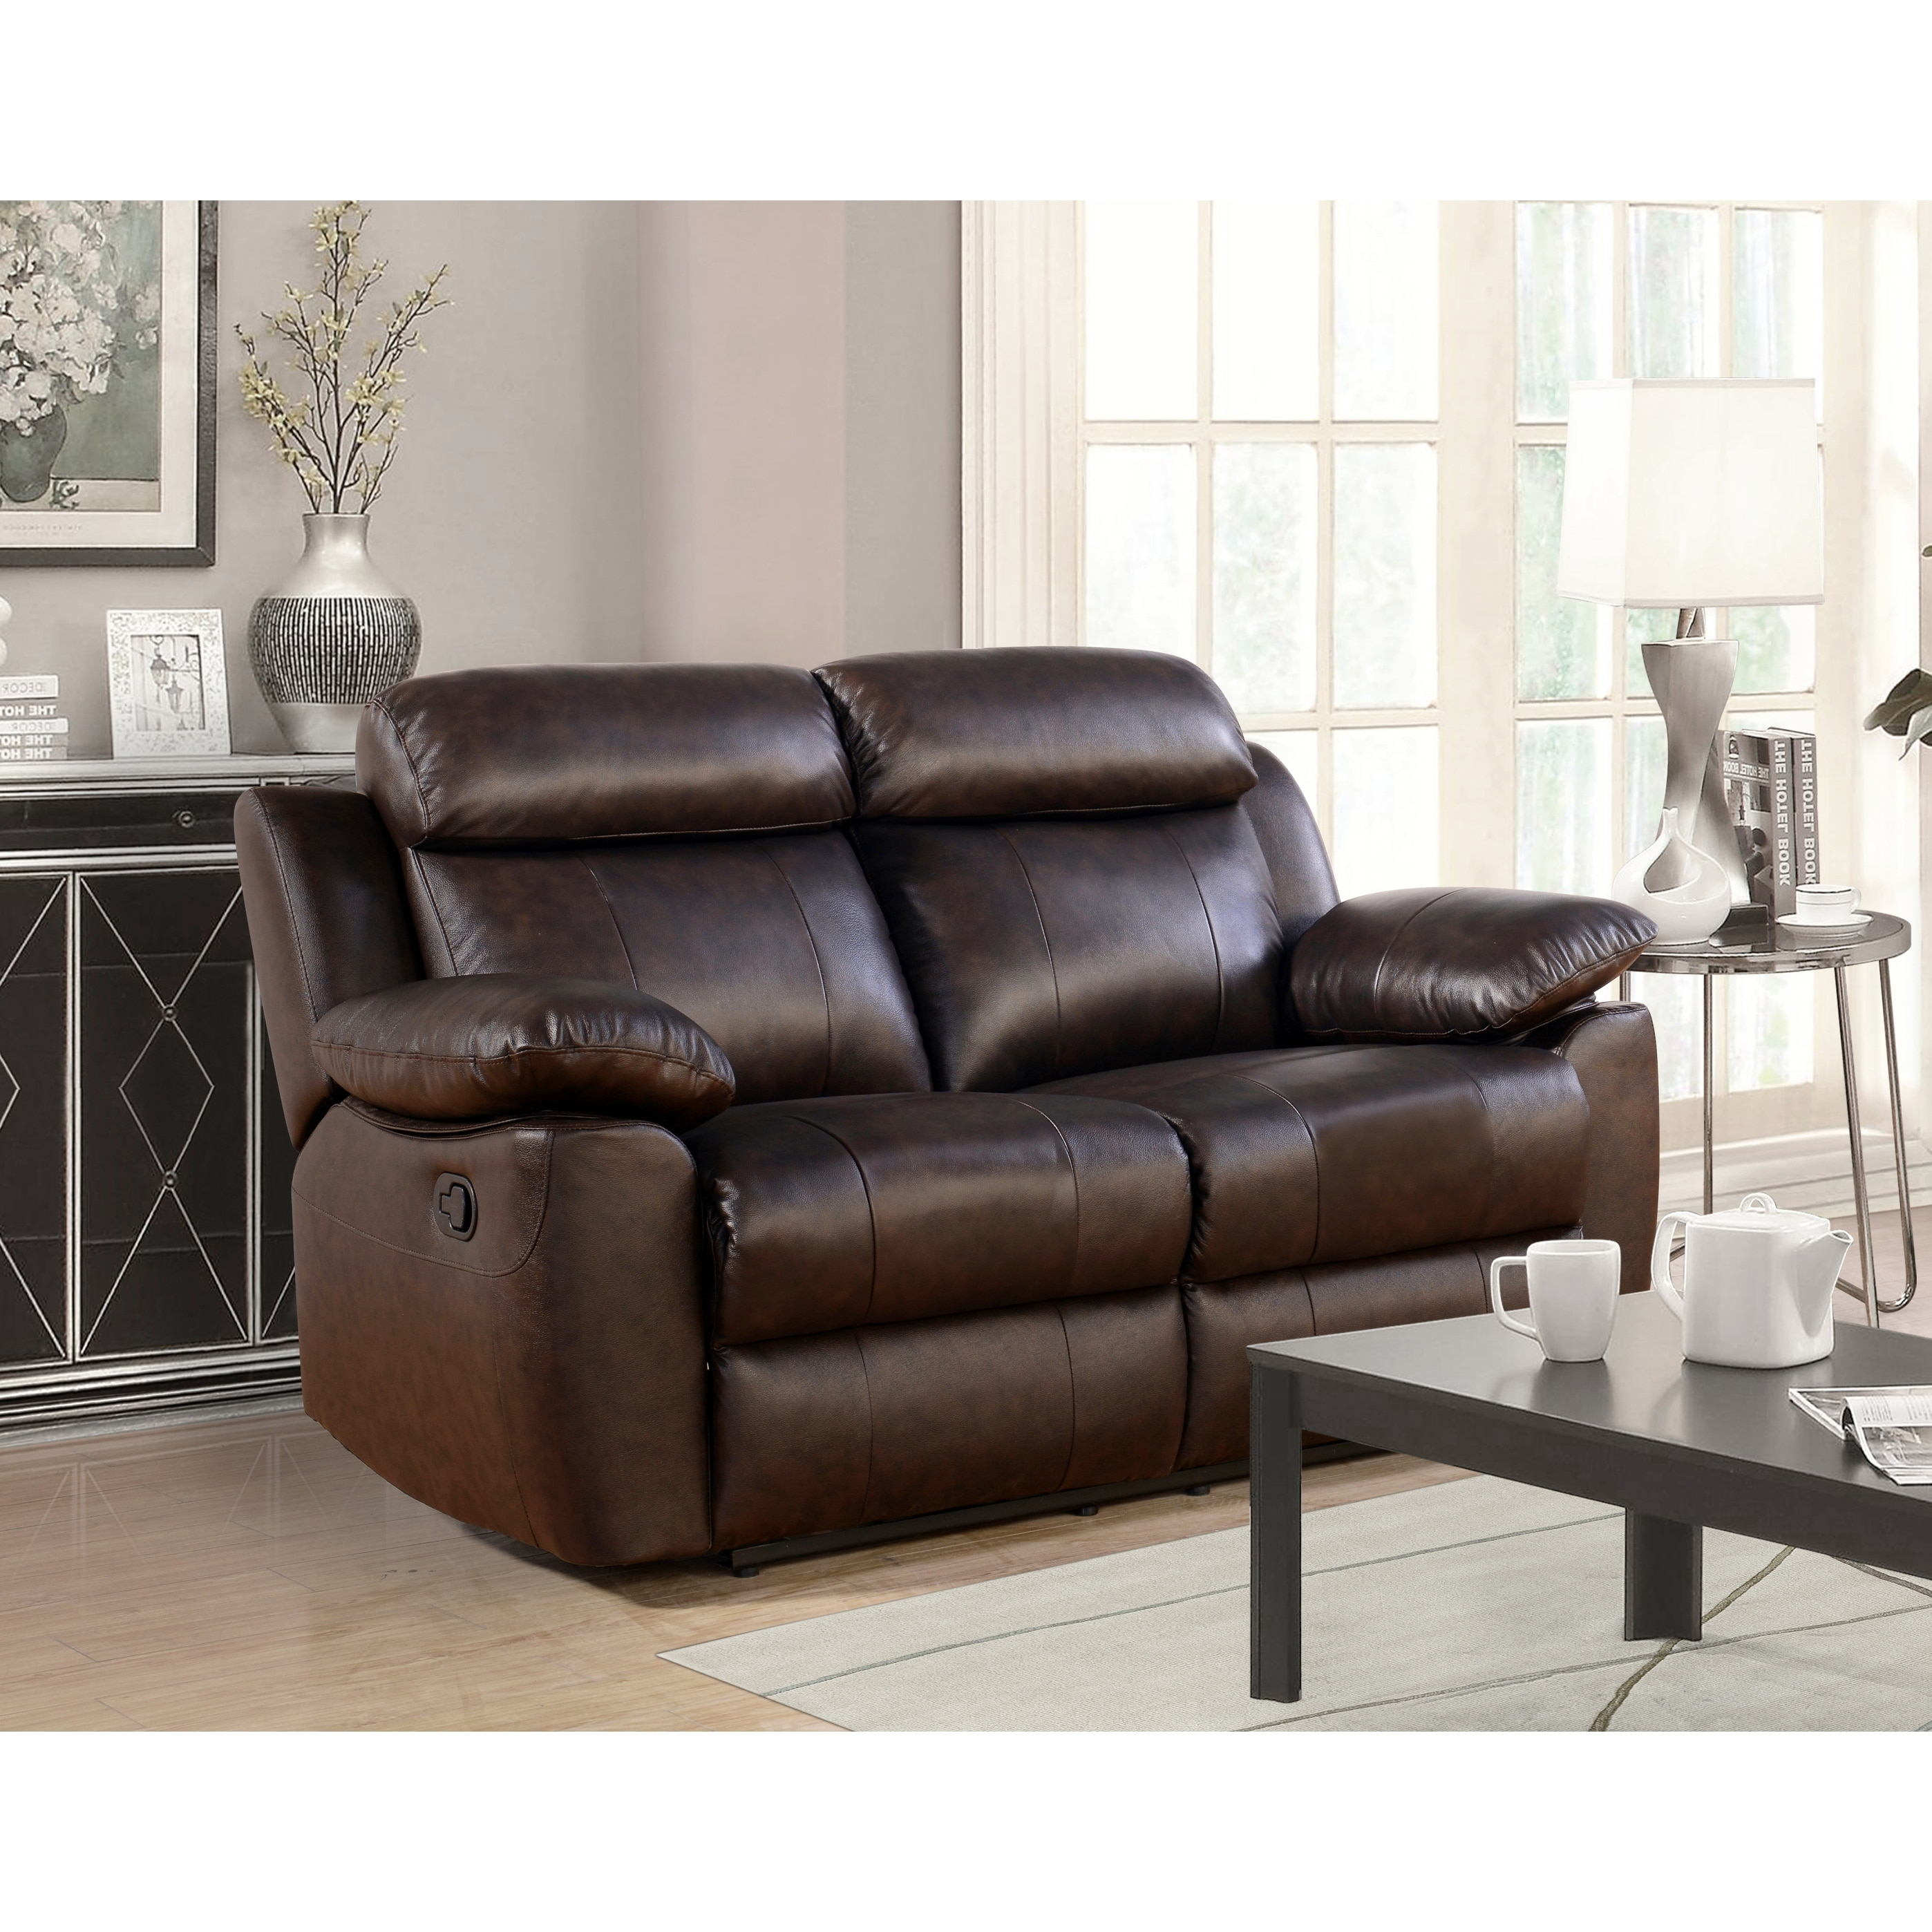 Overstock Com Online Shopping Bedding Furniture Electronics Jewelry Clothing More Leather Reclining Sofa Reclining Sofa Leather Reclining Loveseat